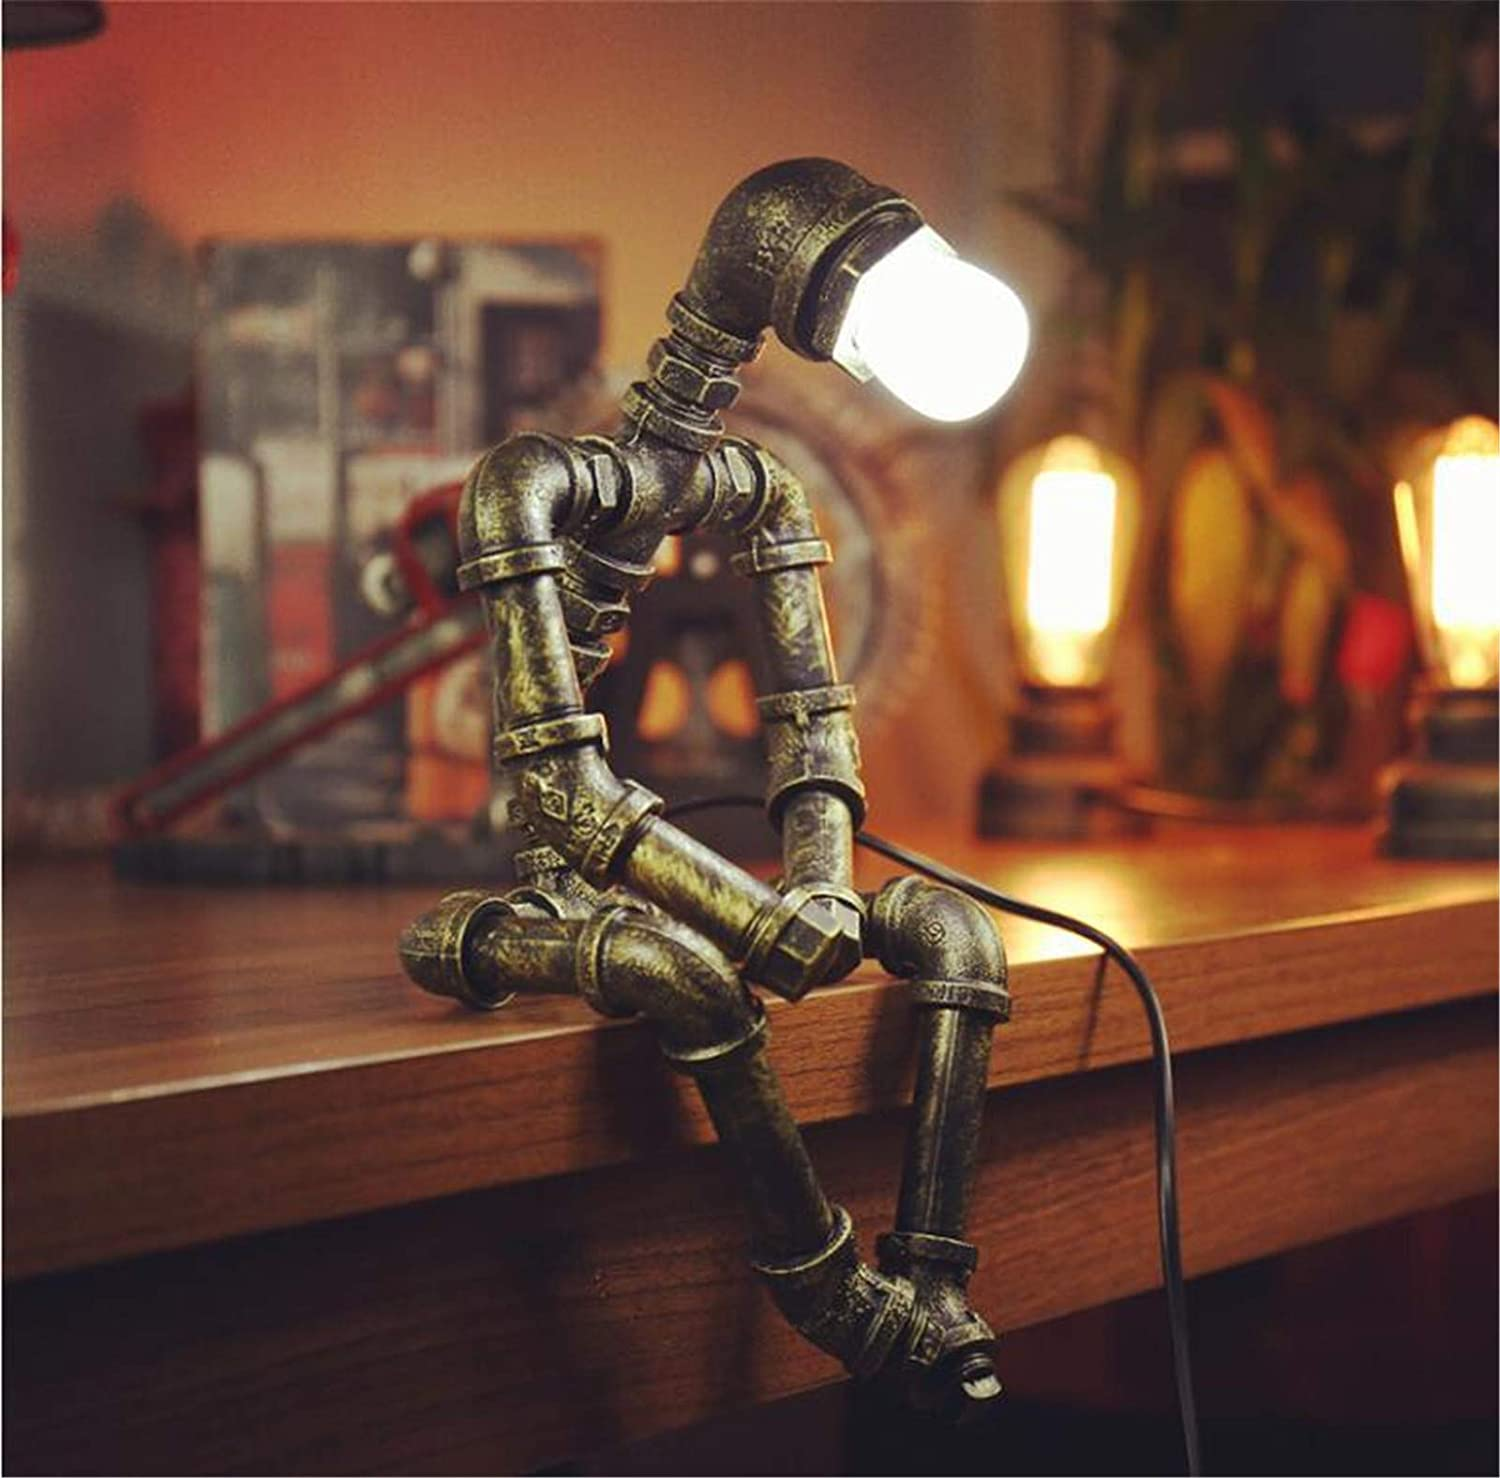 Ranefe Steampunk Industrial Decor Table Lamp,Vintage Cool Pipes Robot Lamp Iron Bronze Industrial Steampunk Decor Table Desk Lamp for Living Room,Bedroom,Home Office